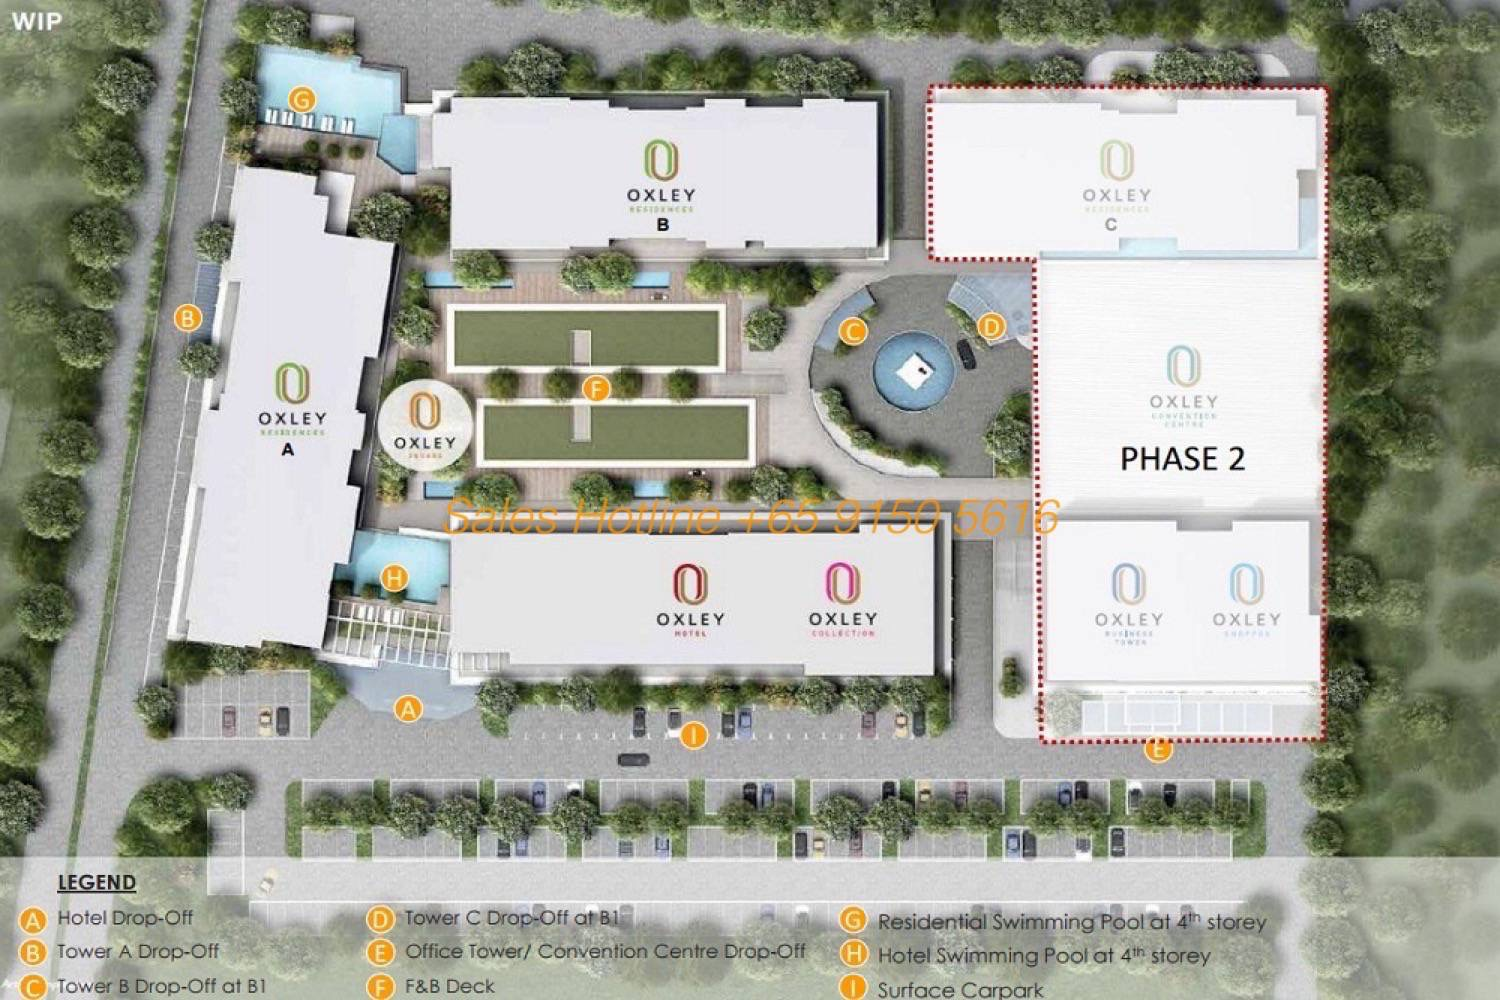 Oxley Convention City Batam - Site Plan